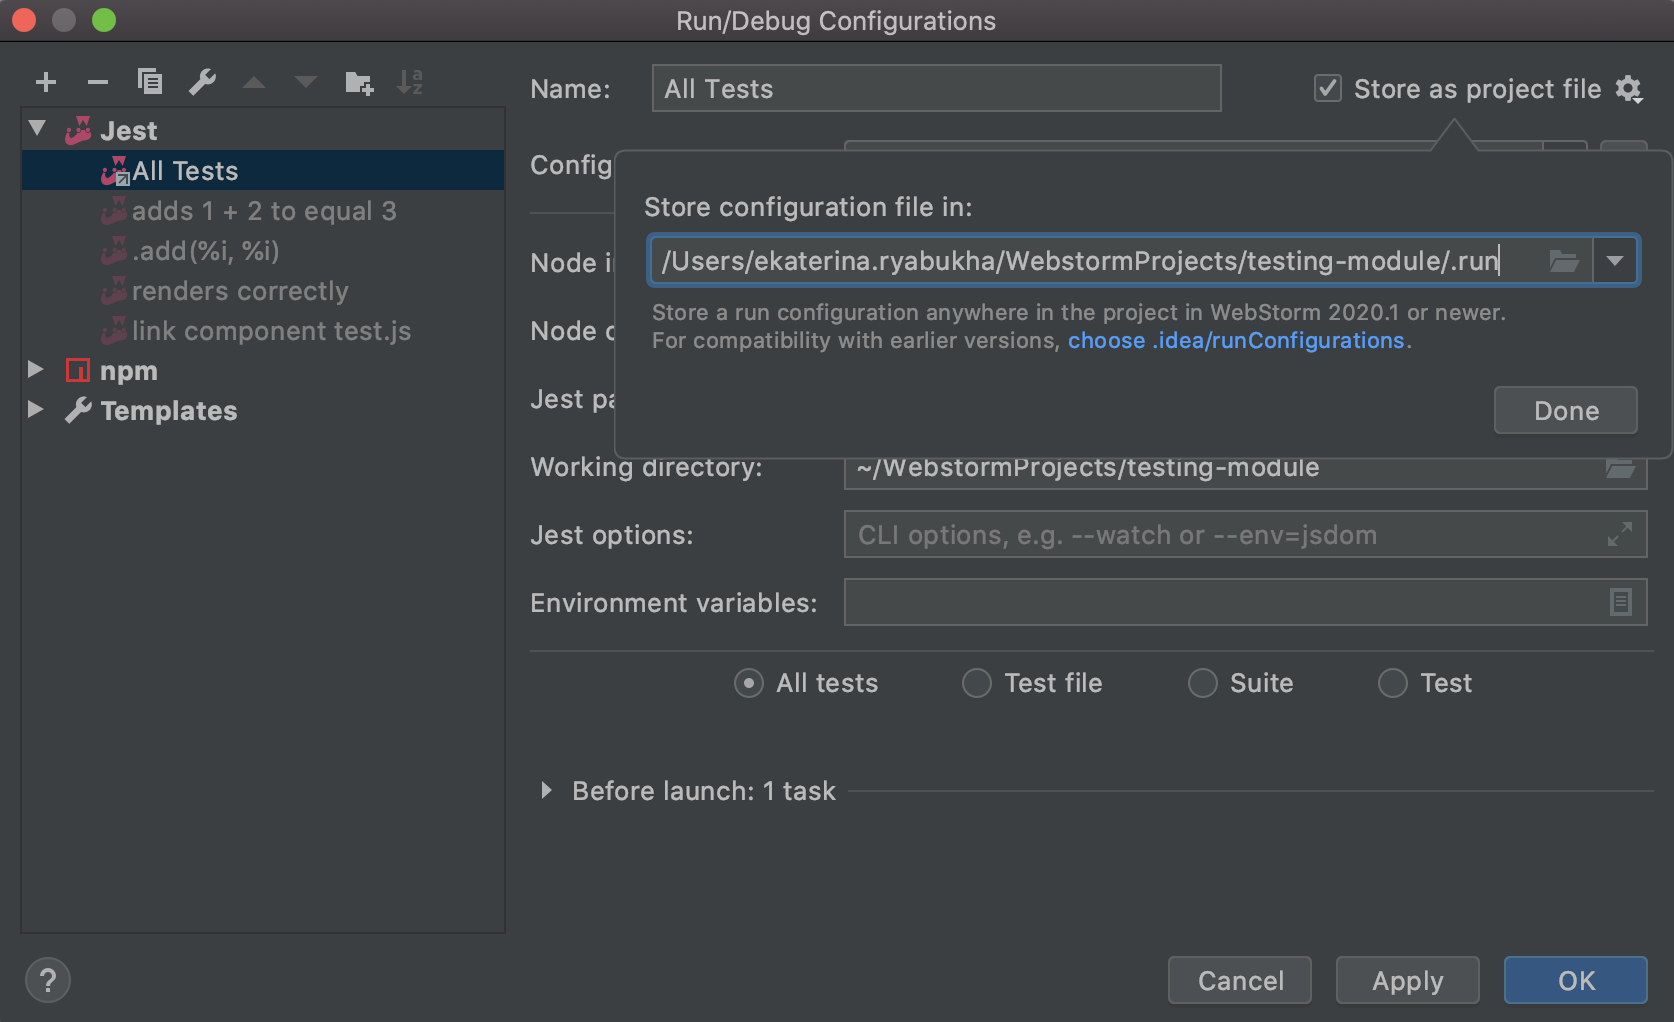 run-configuration-in-webstorm-2020-1